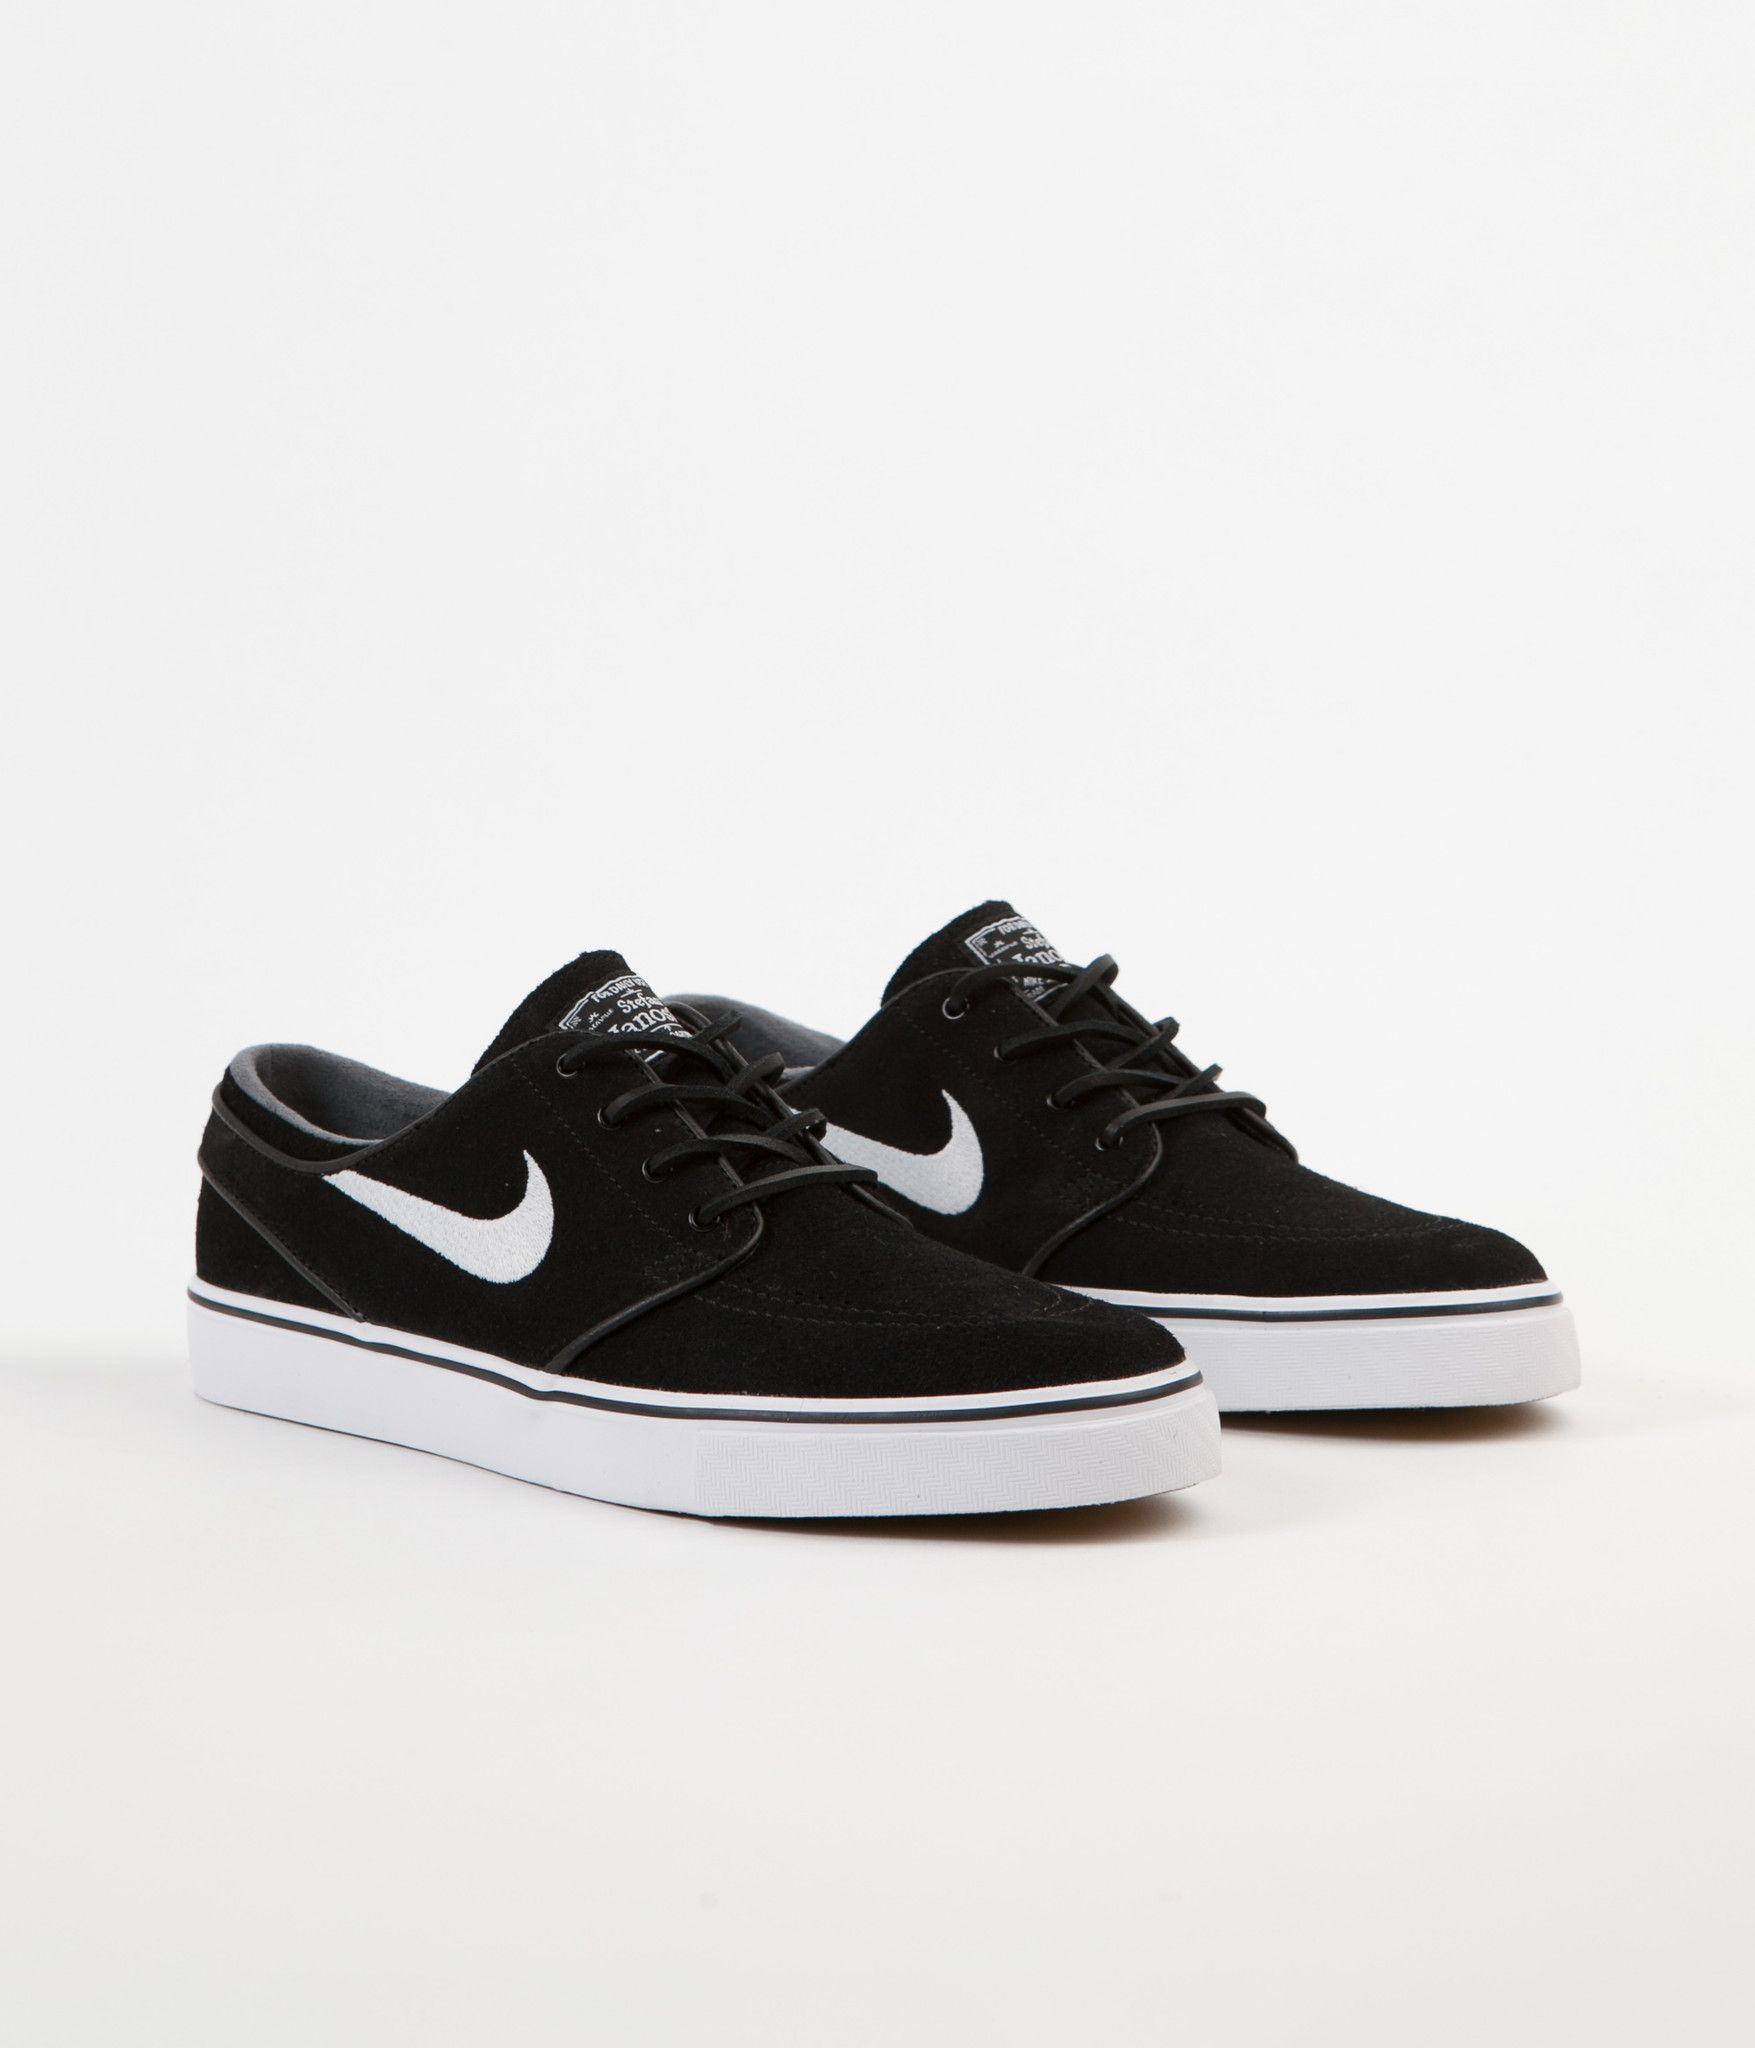 the best attitude 926d7 99ba8 Nike SB Stefan Janoski OG Shoes - Black   White - Gum Light Brown